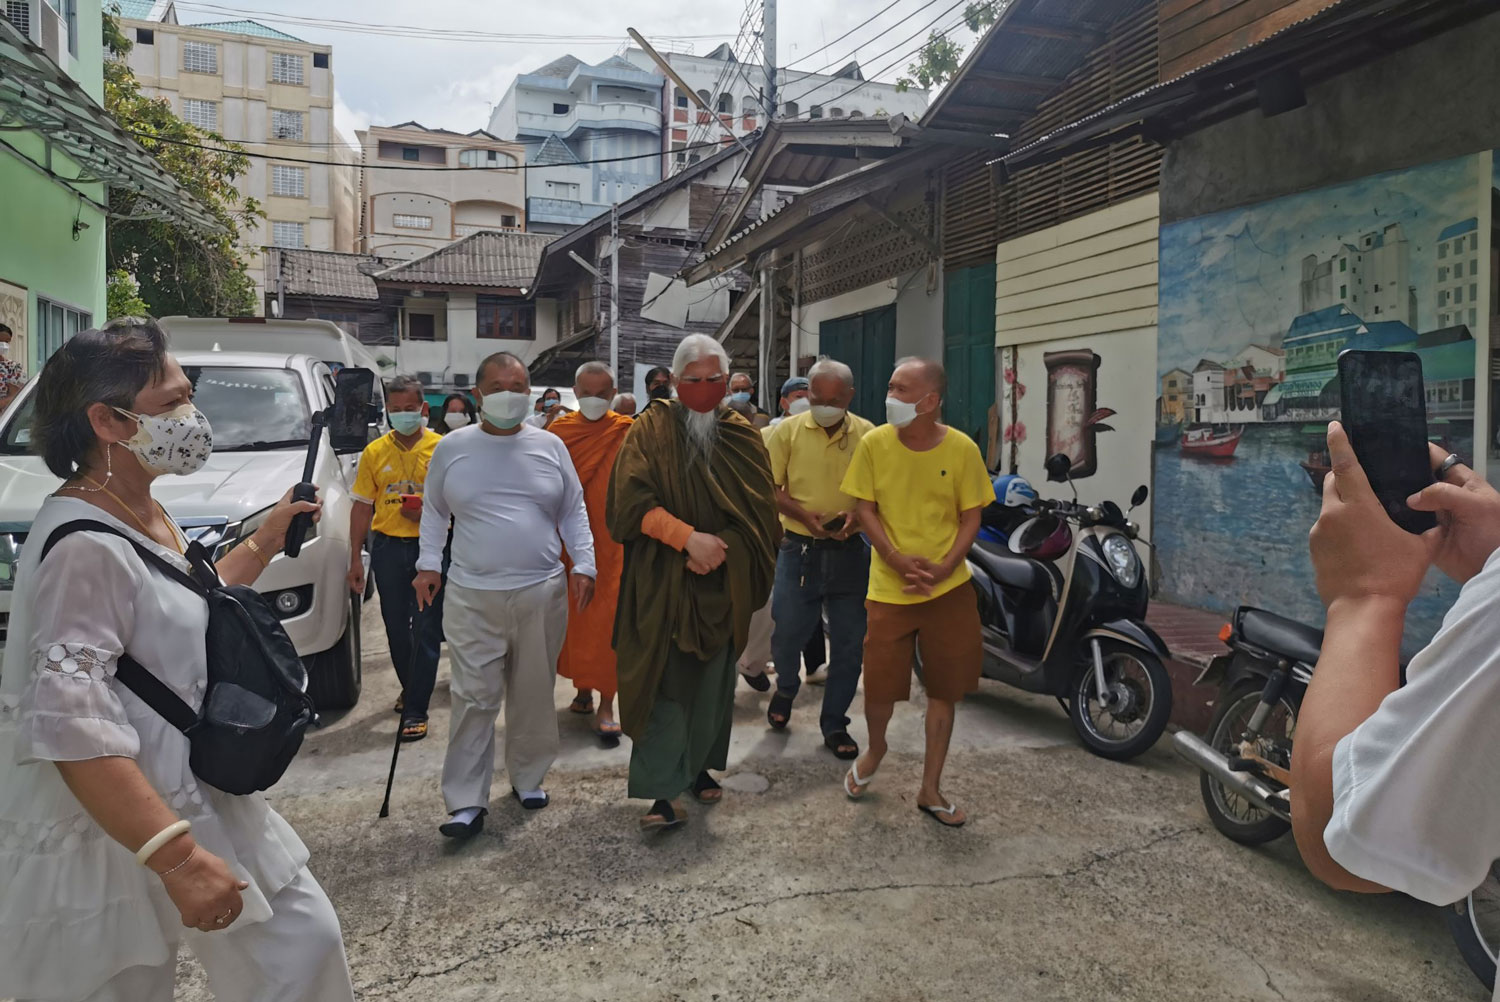 Disgraced former monk returns to Thailand, warmly received